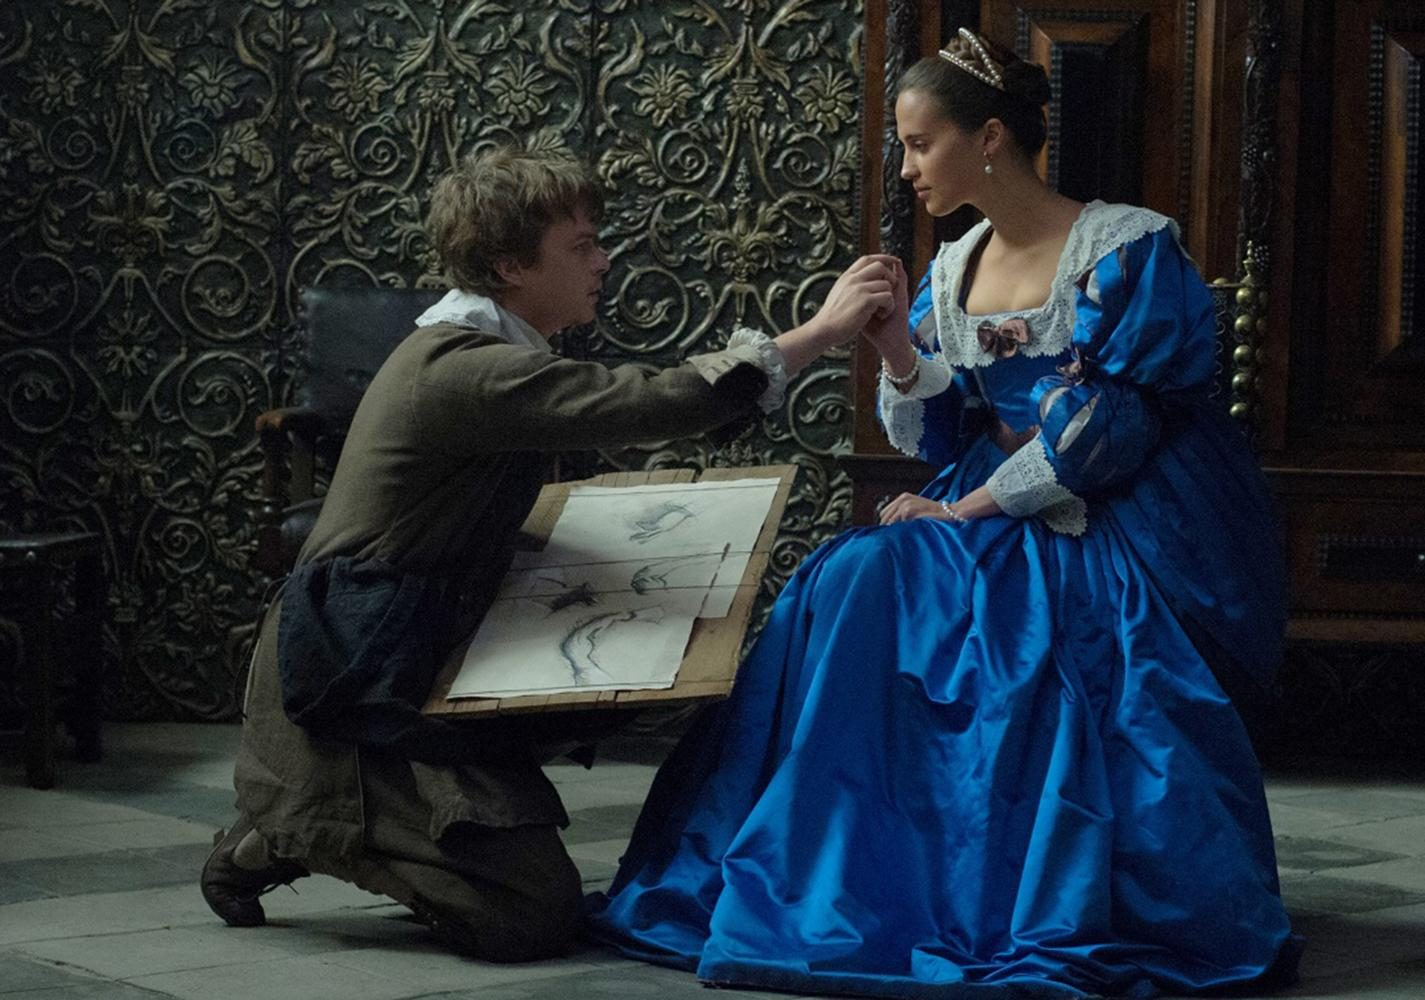 Dane+Dehaan+and+Alicia+Vikander+play+Jan+Van+Loos+and+Sophia+in+%22Tulip+Fever%22+Photo+Credit%3A+MCT+Campus